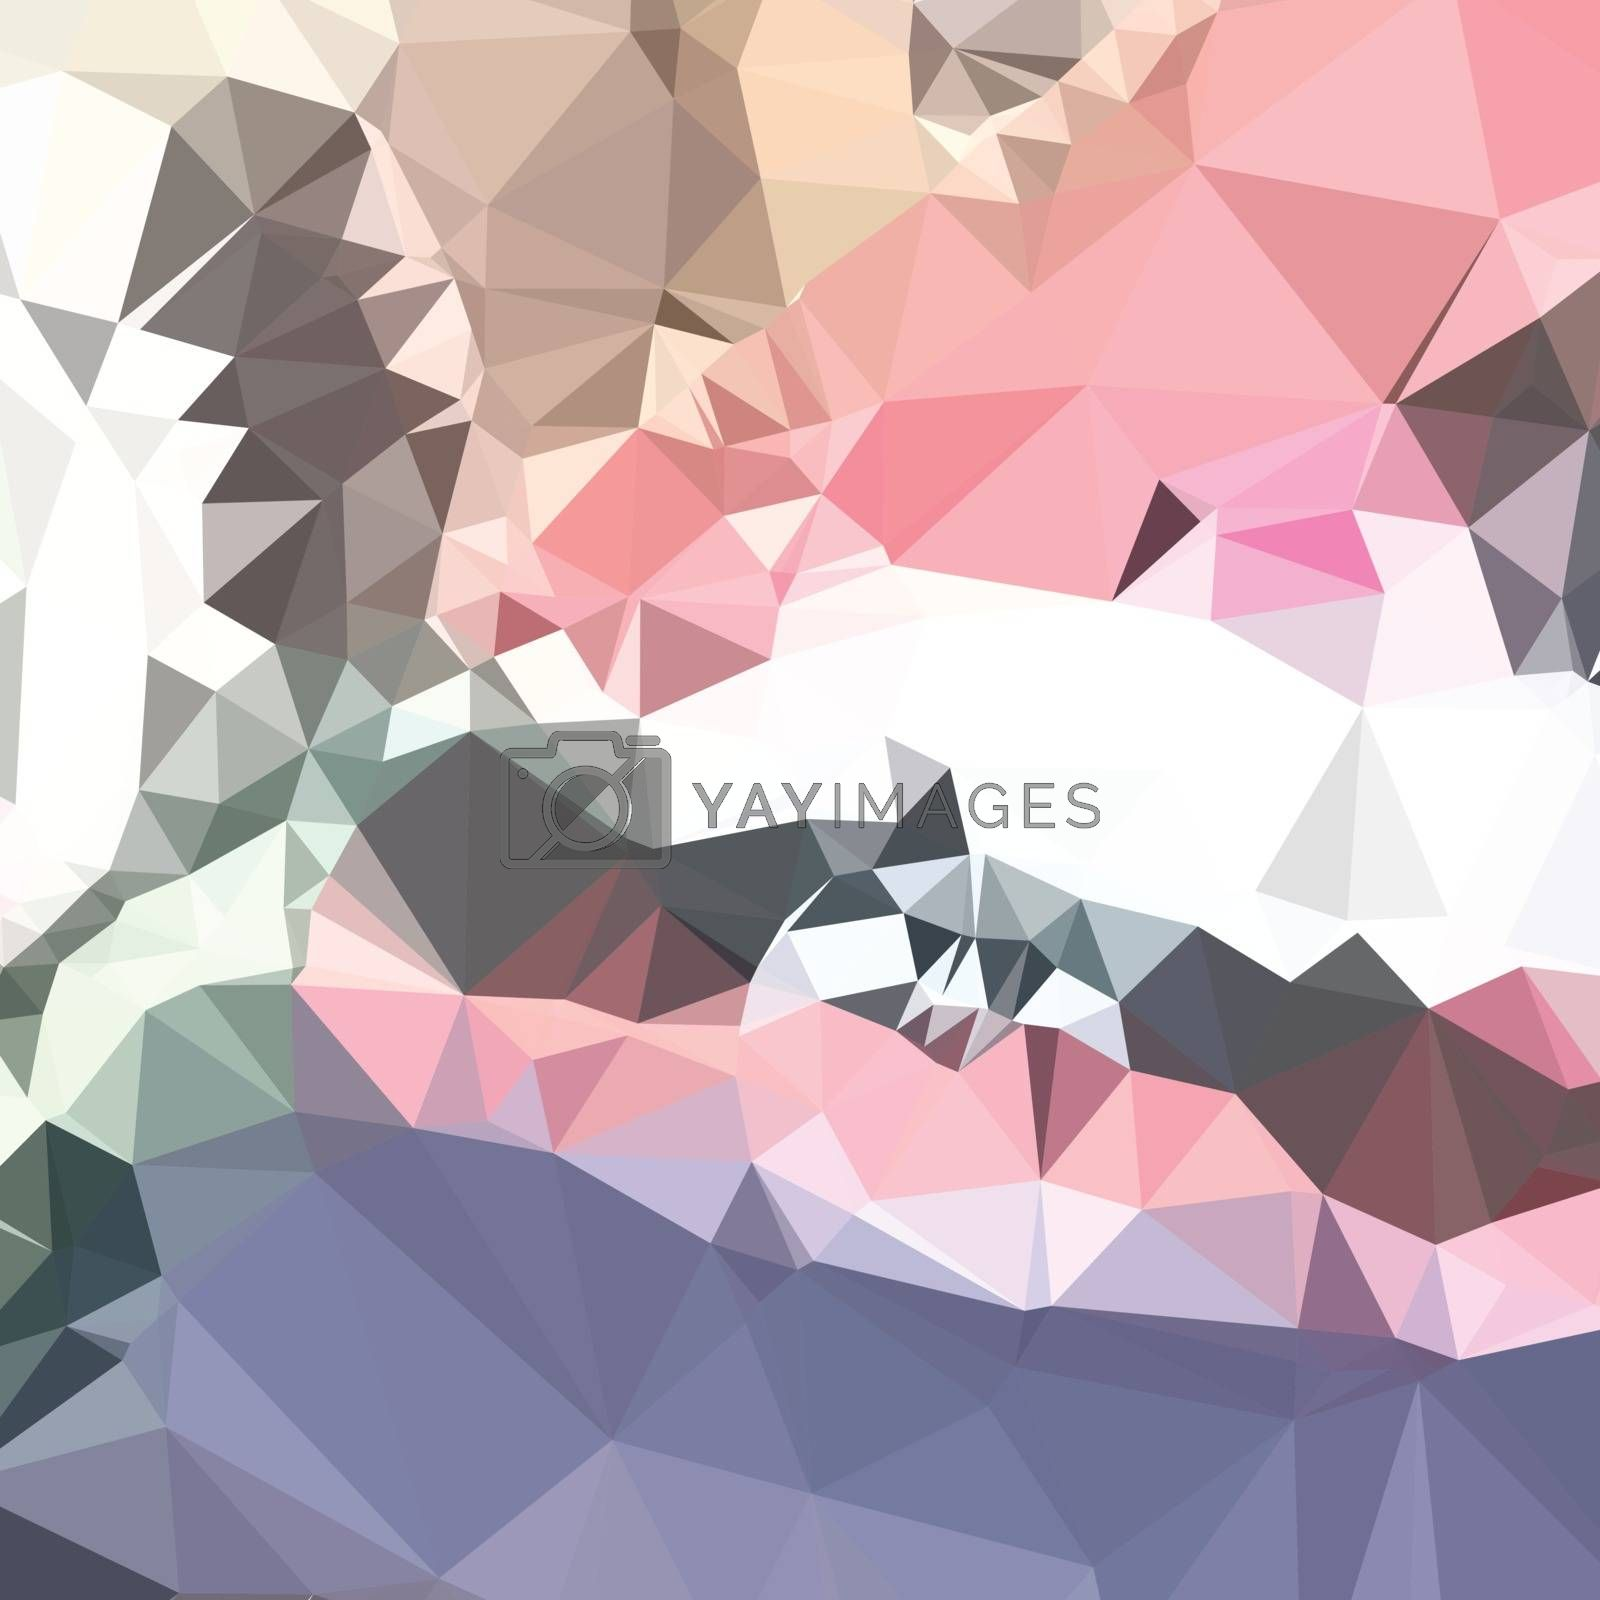 Low polygon style illustration of a lavender pink abstract geometric background.